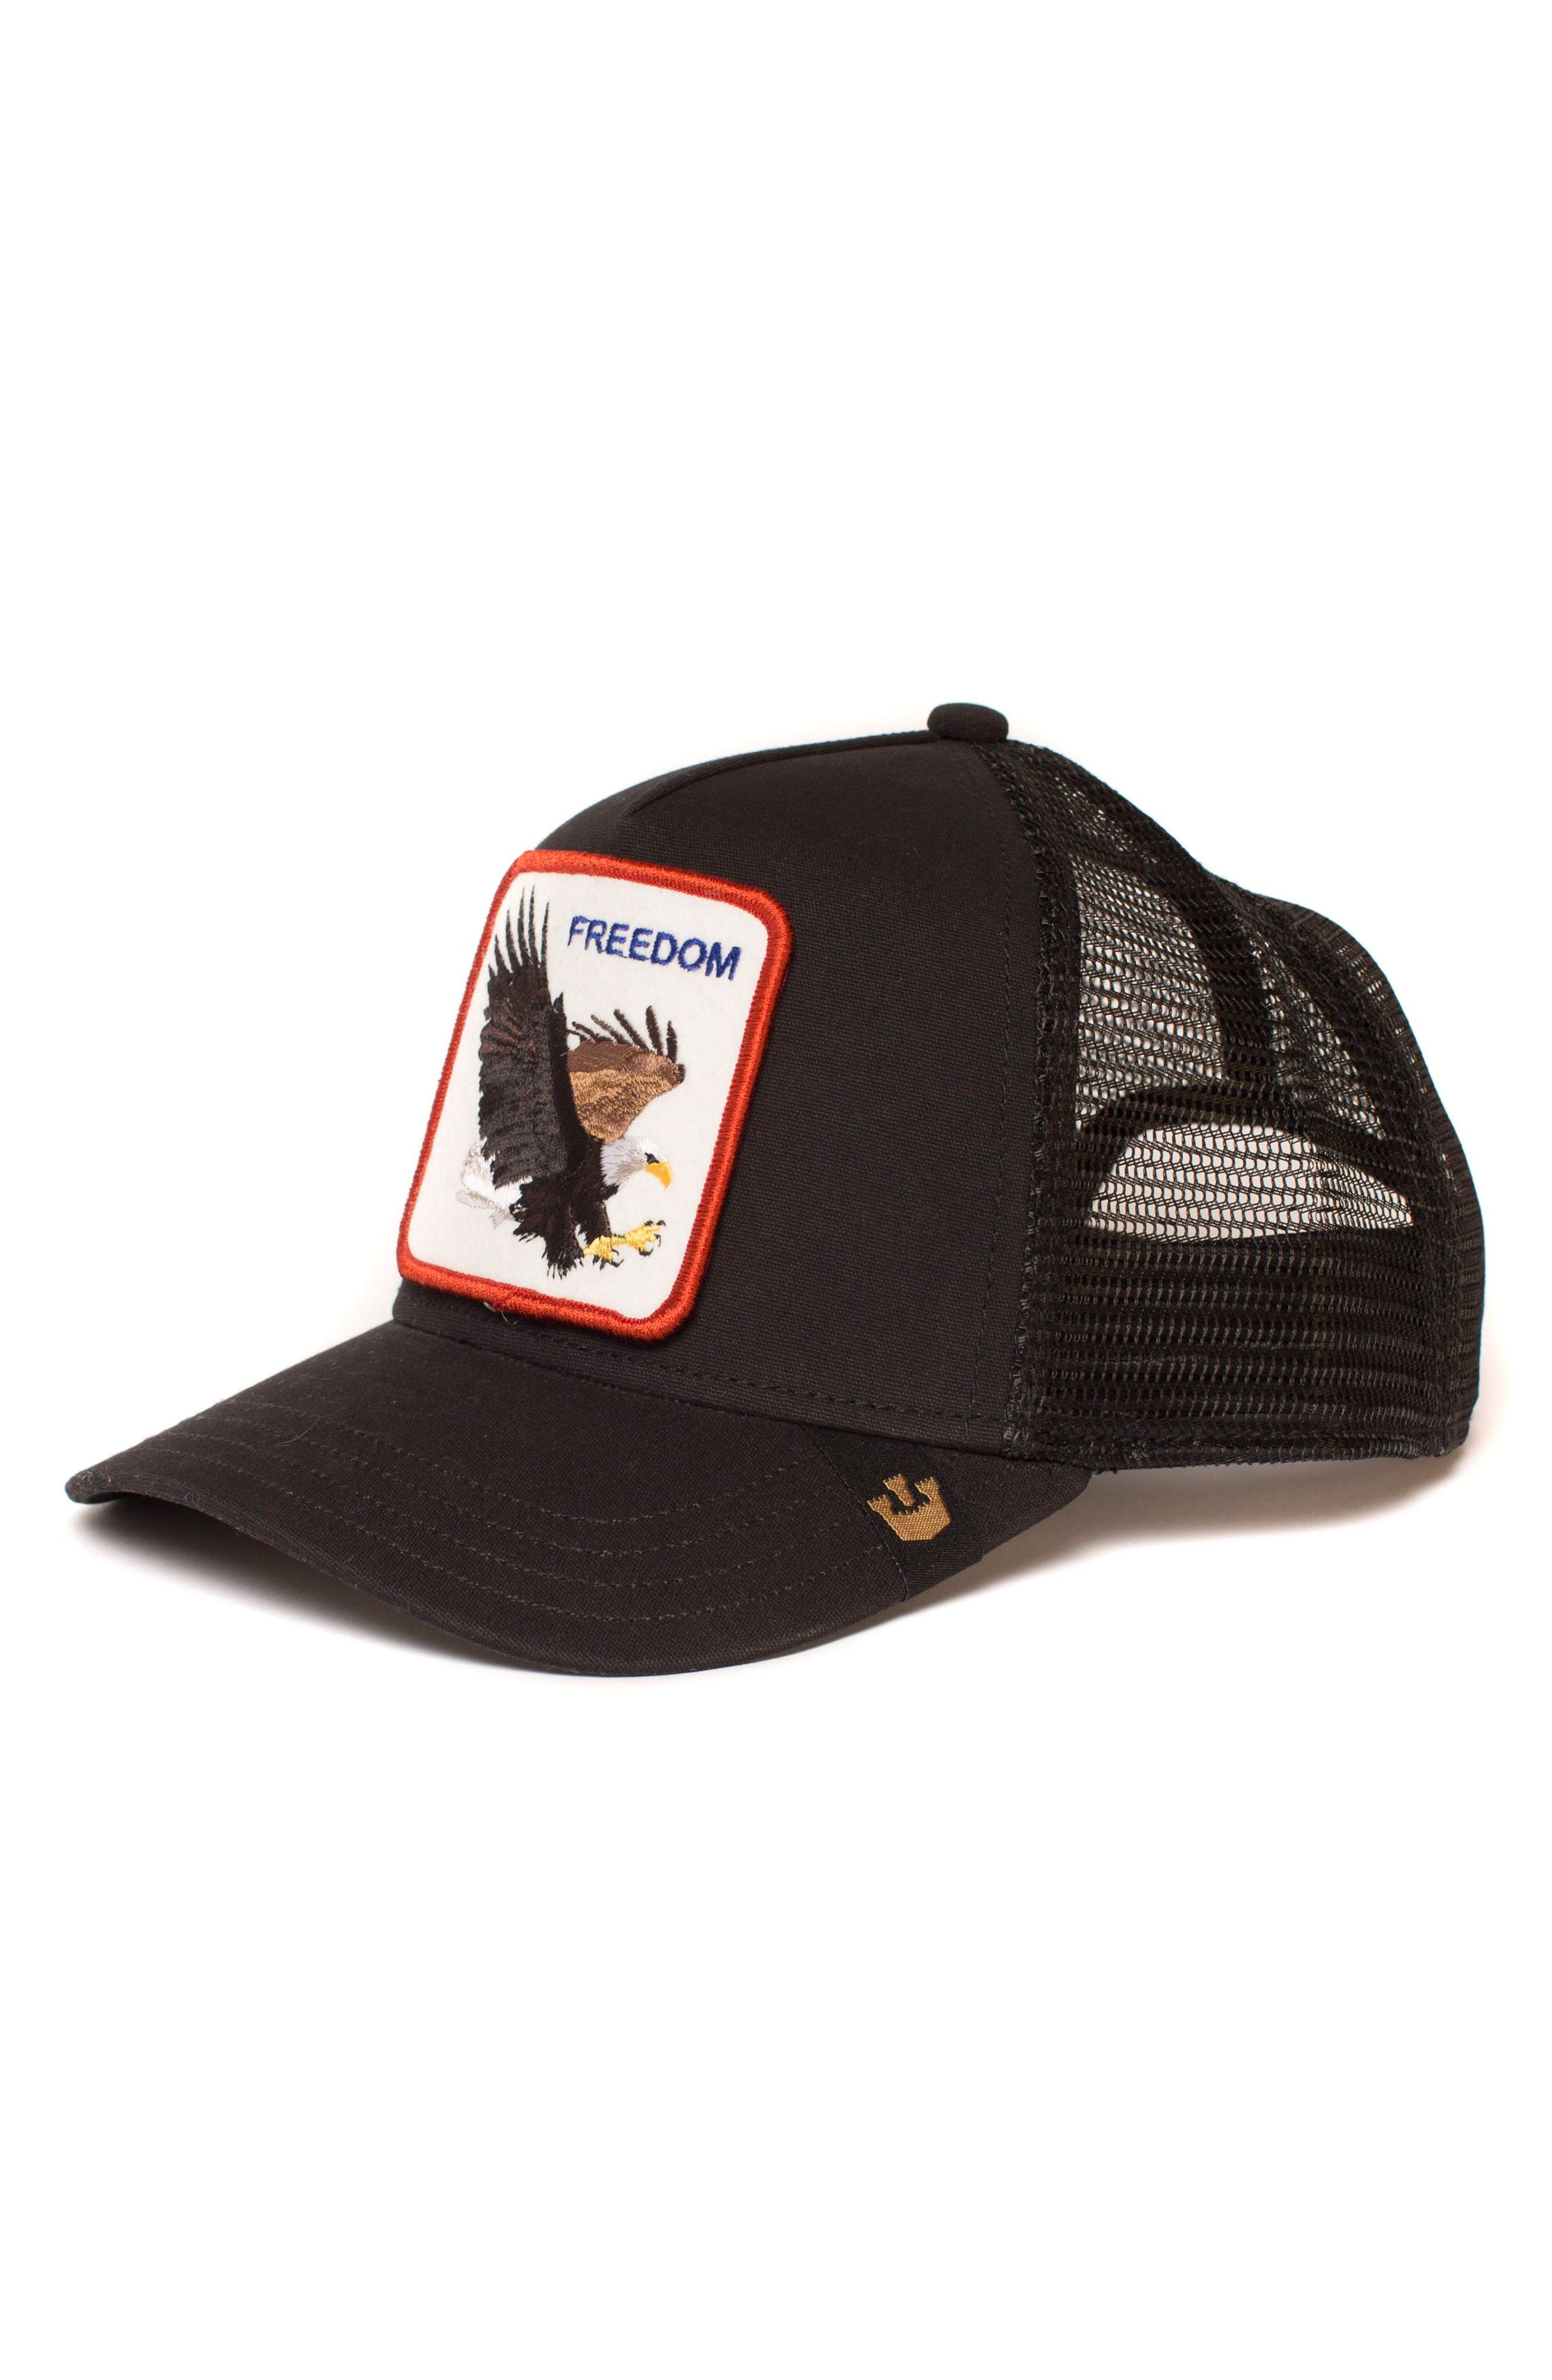 Freedom Trucker Hat,                         Main,                         color, 001